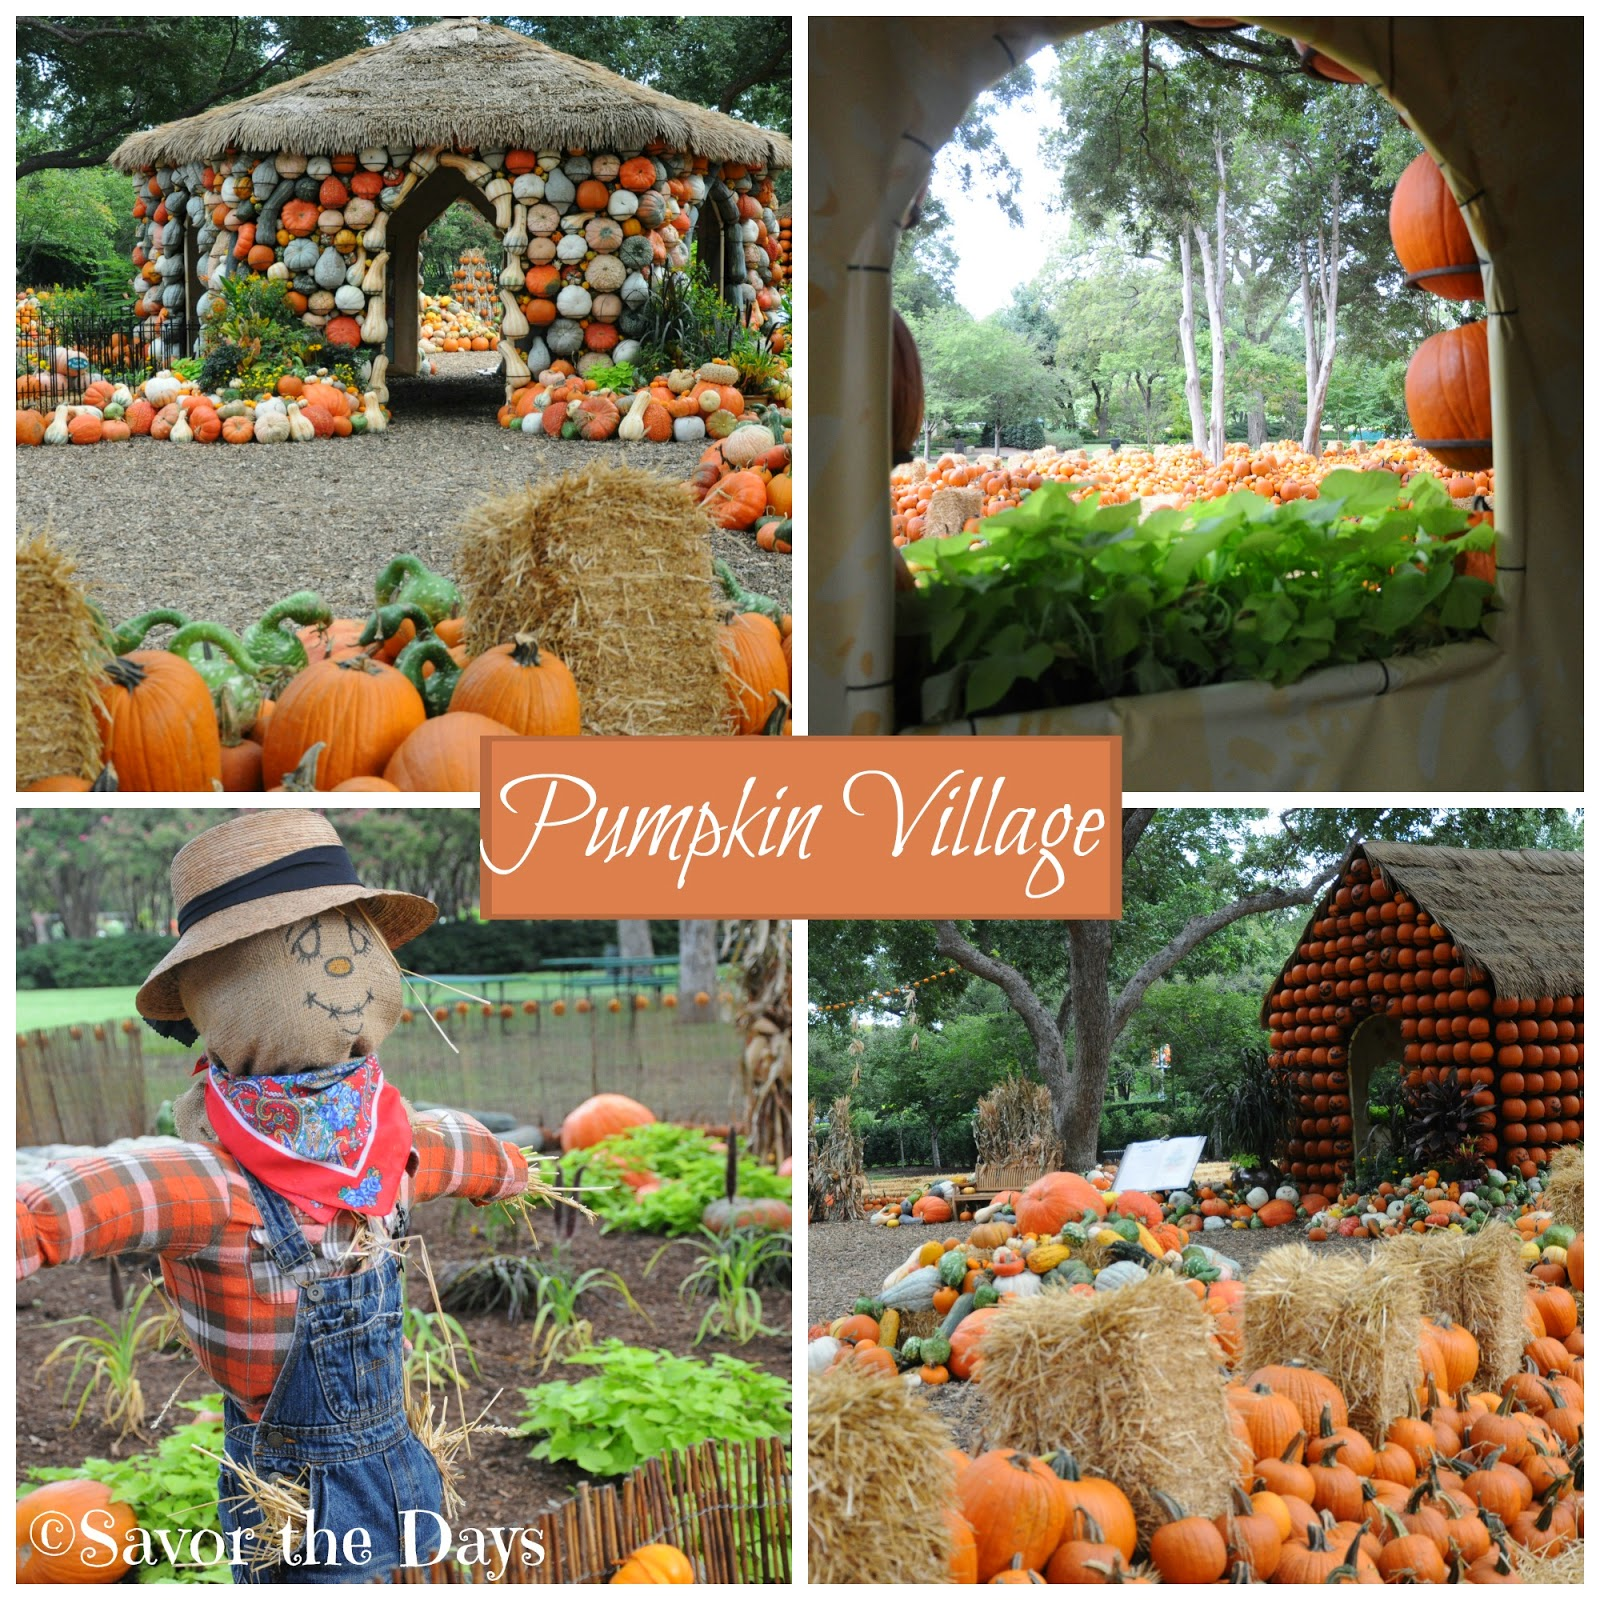 Pumpkin Village at the Dallas Arboretum